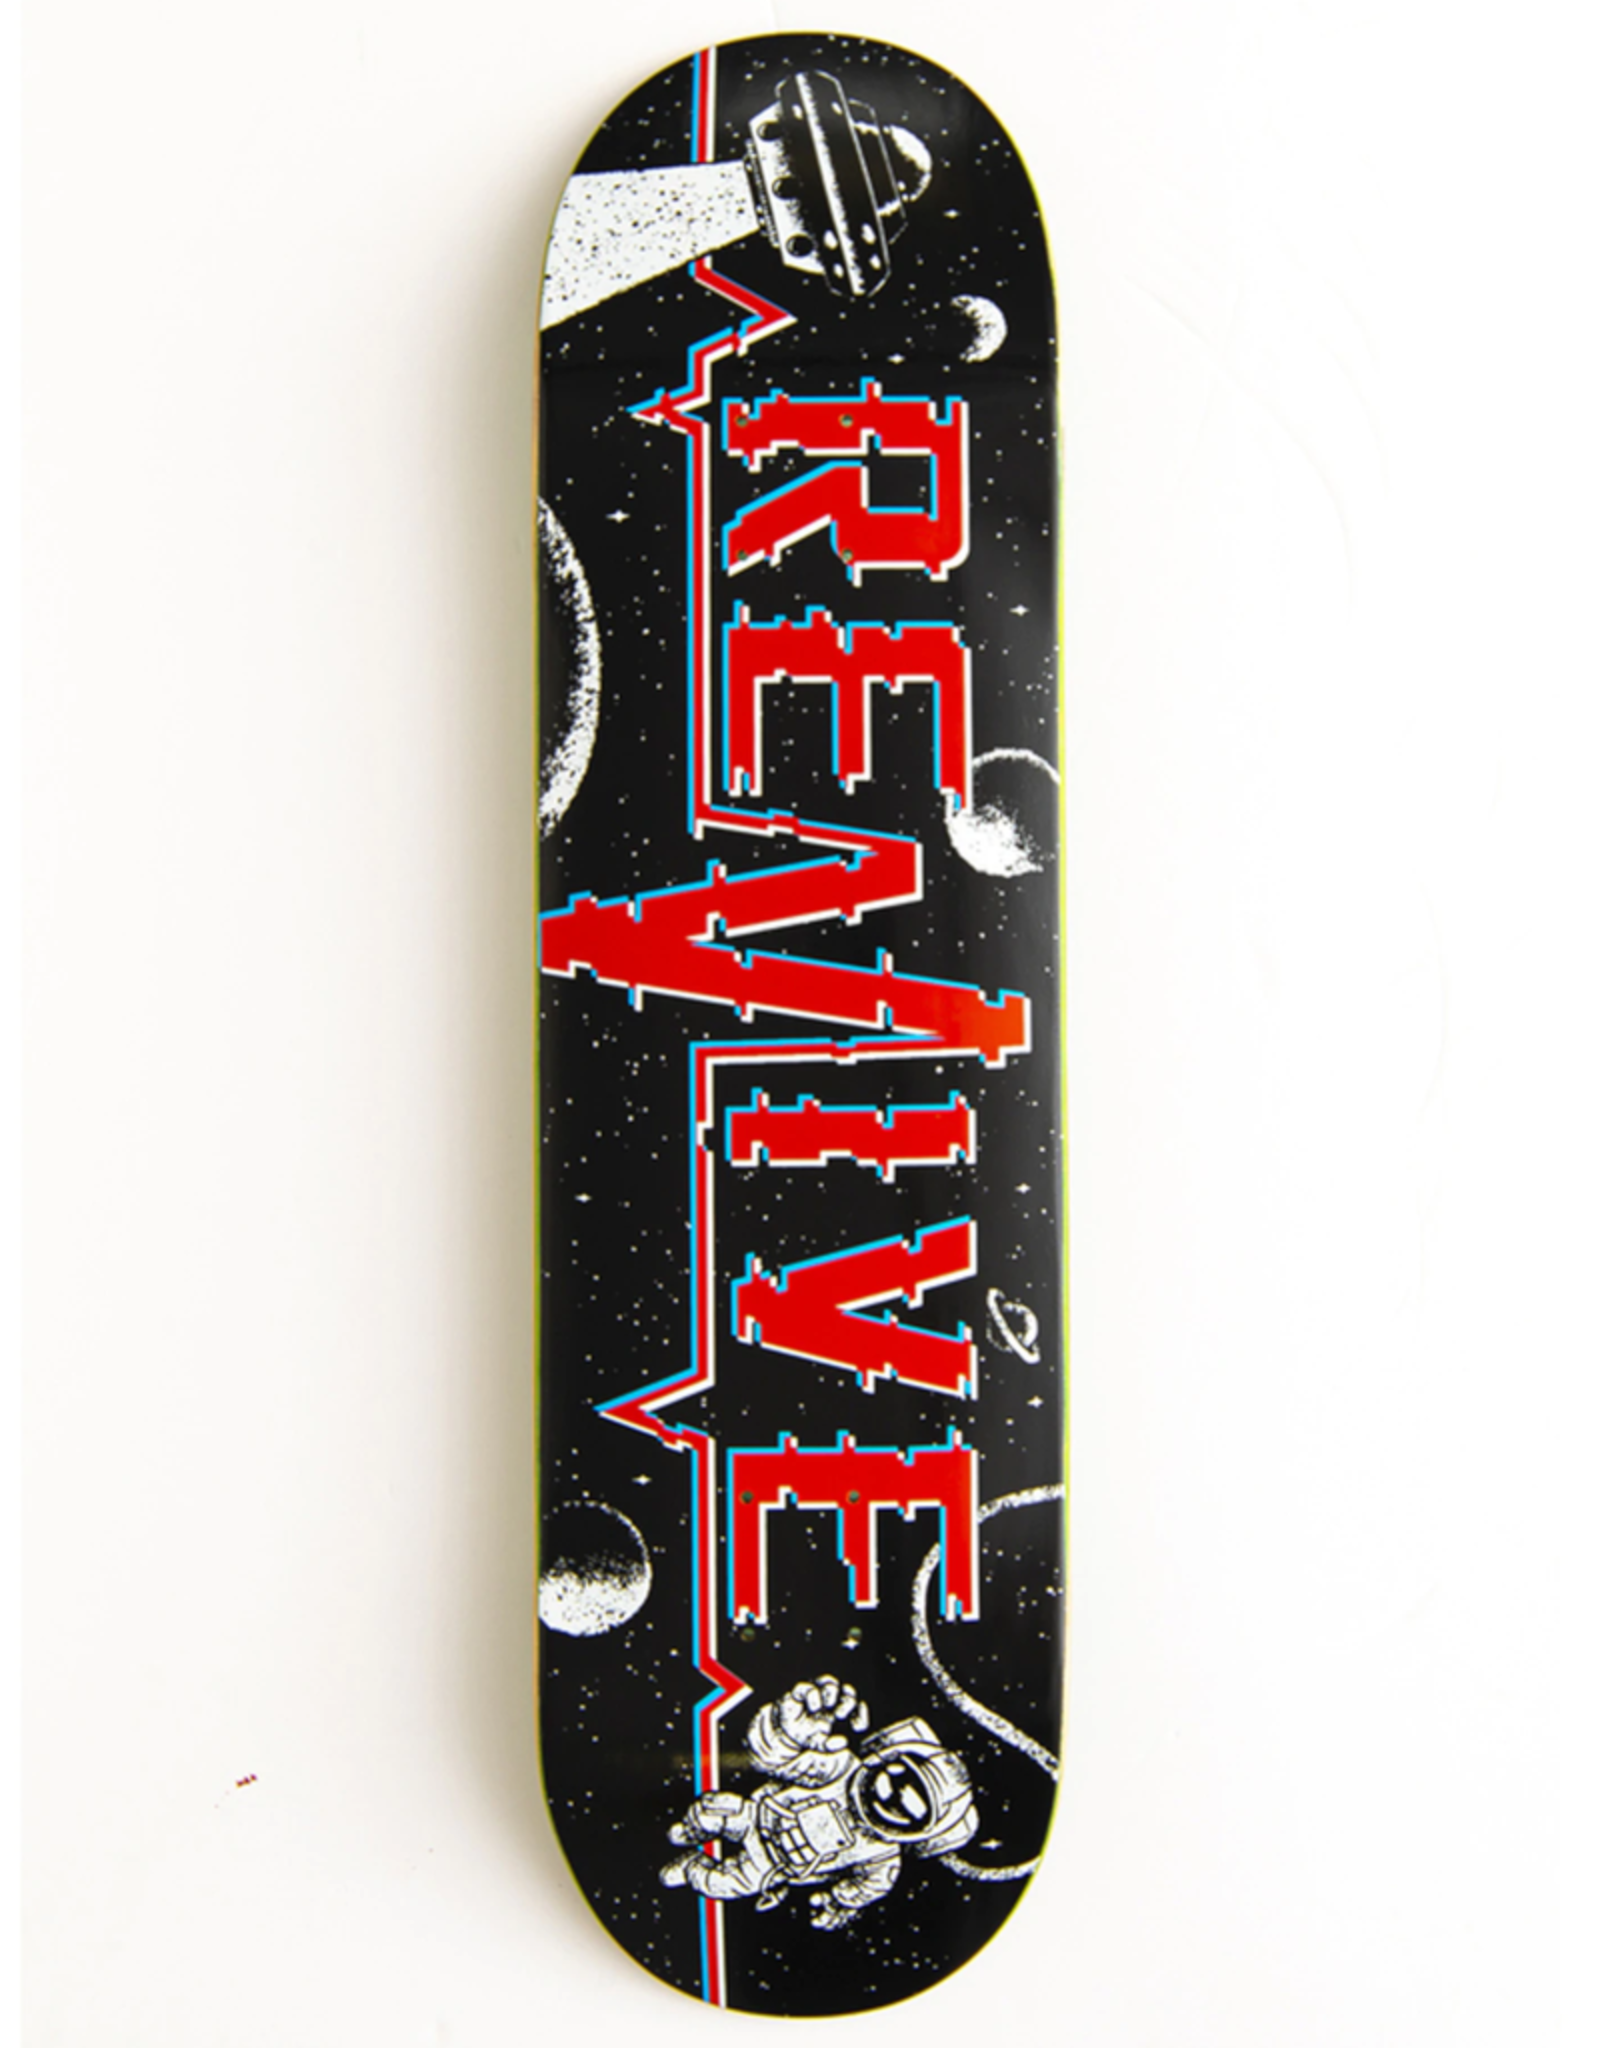 REVIVE REVIVE Space Lifeline 3.0 - Deck